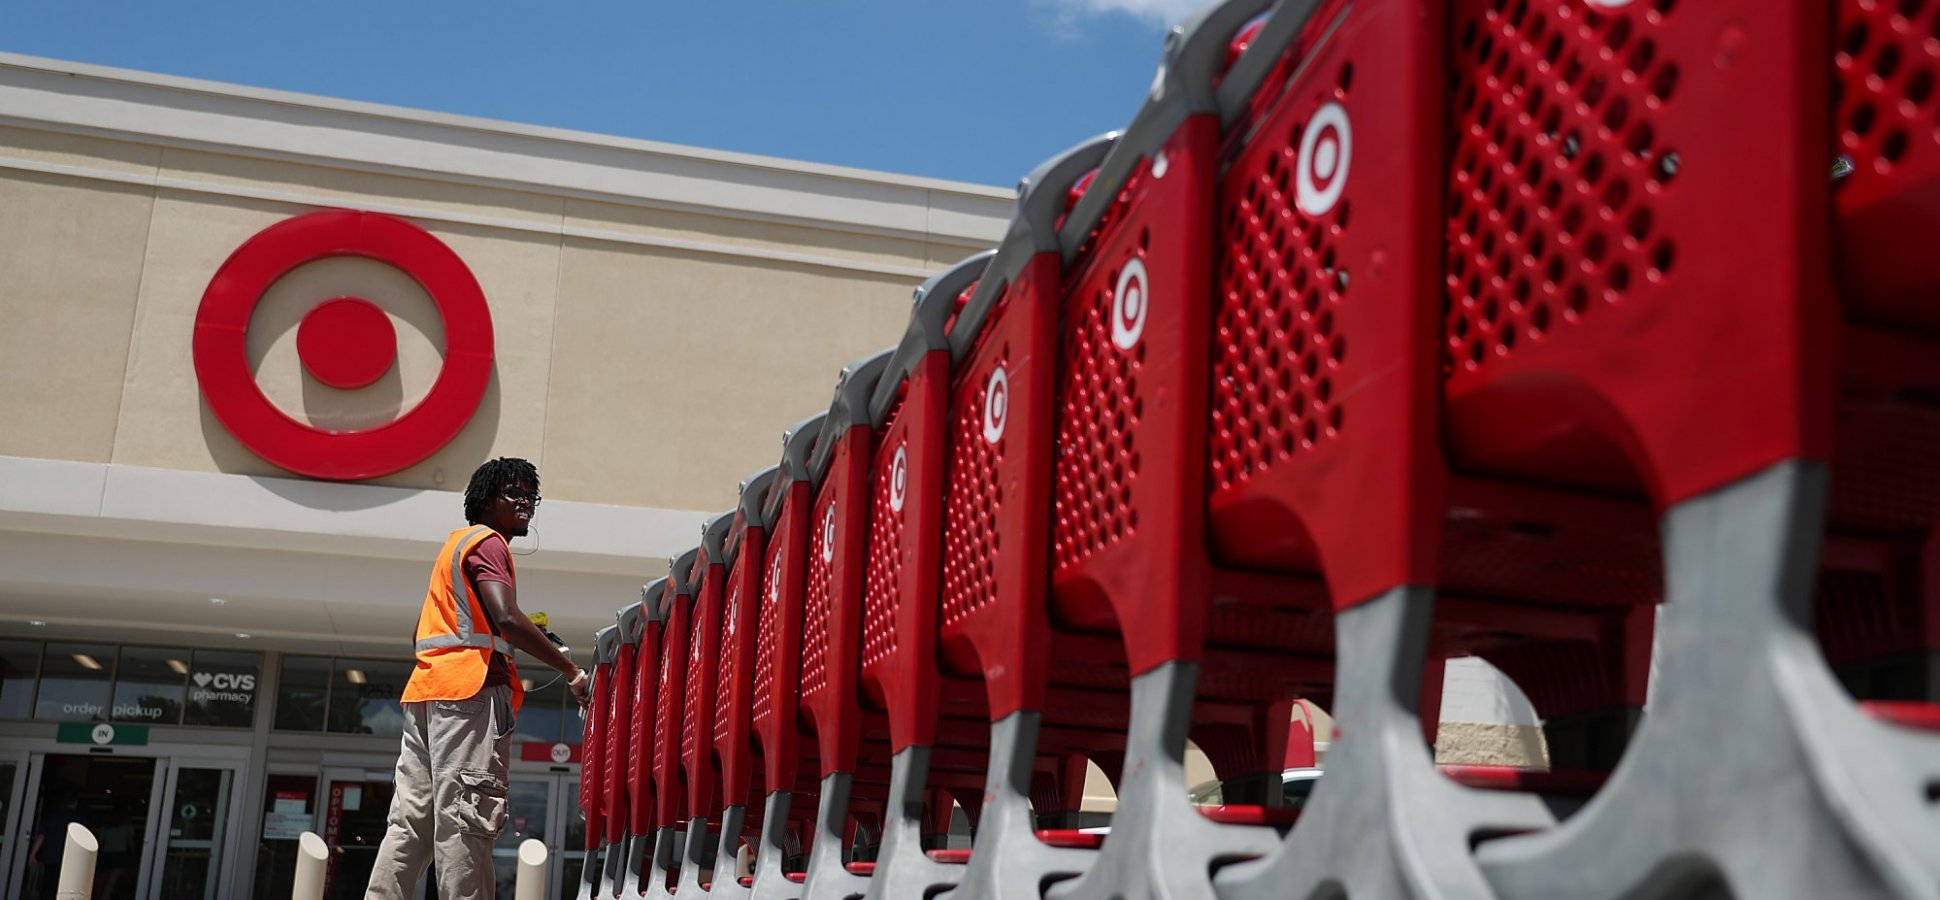 Target Is Asking Employees To Do Something No Employee Should Ever Have To Do